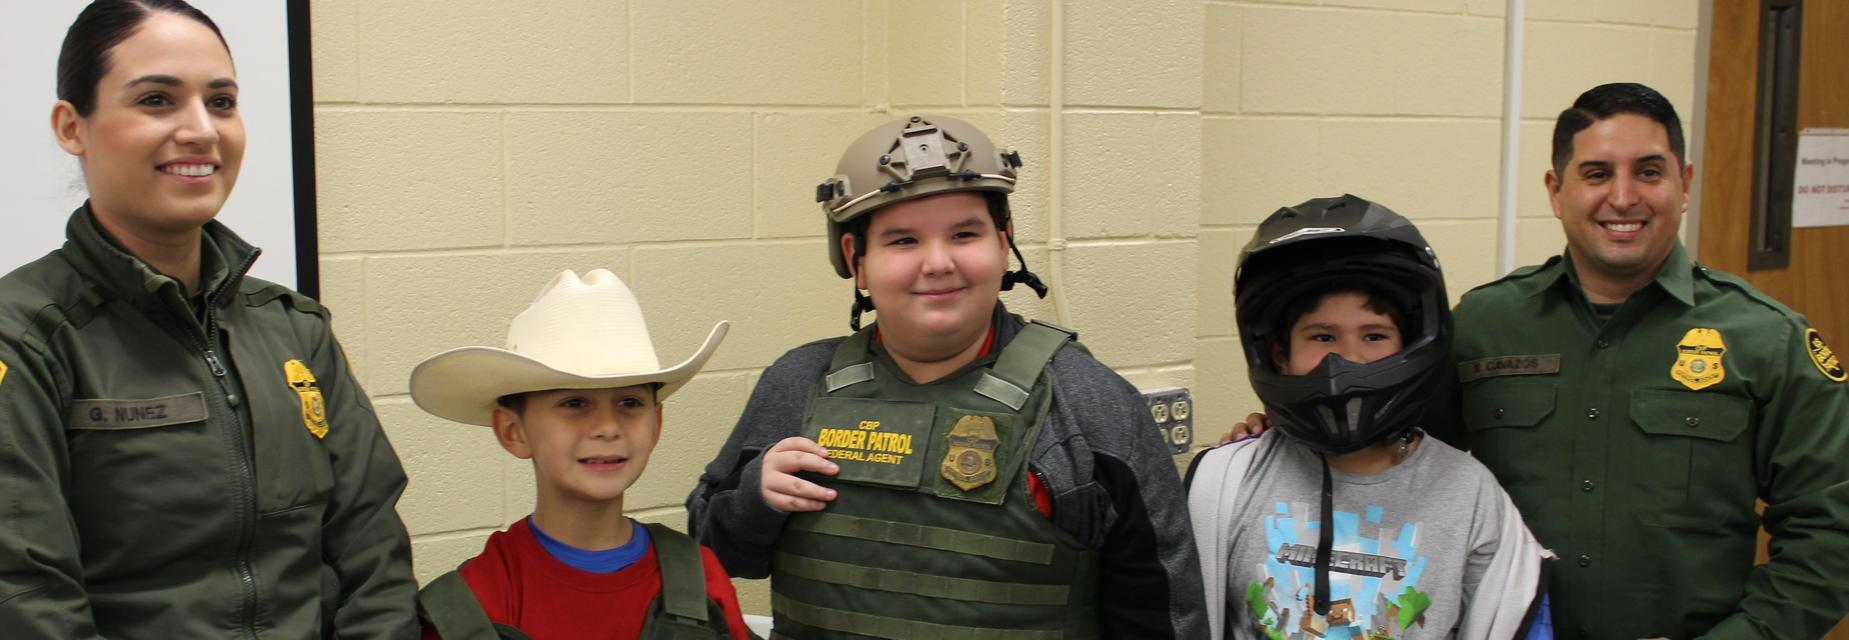 Career Day with Border Patrol